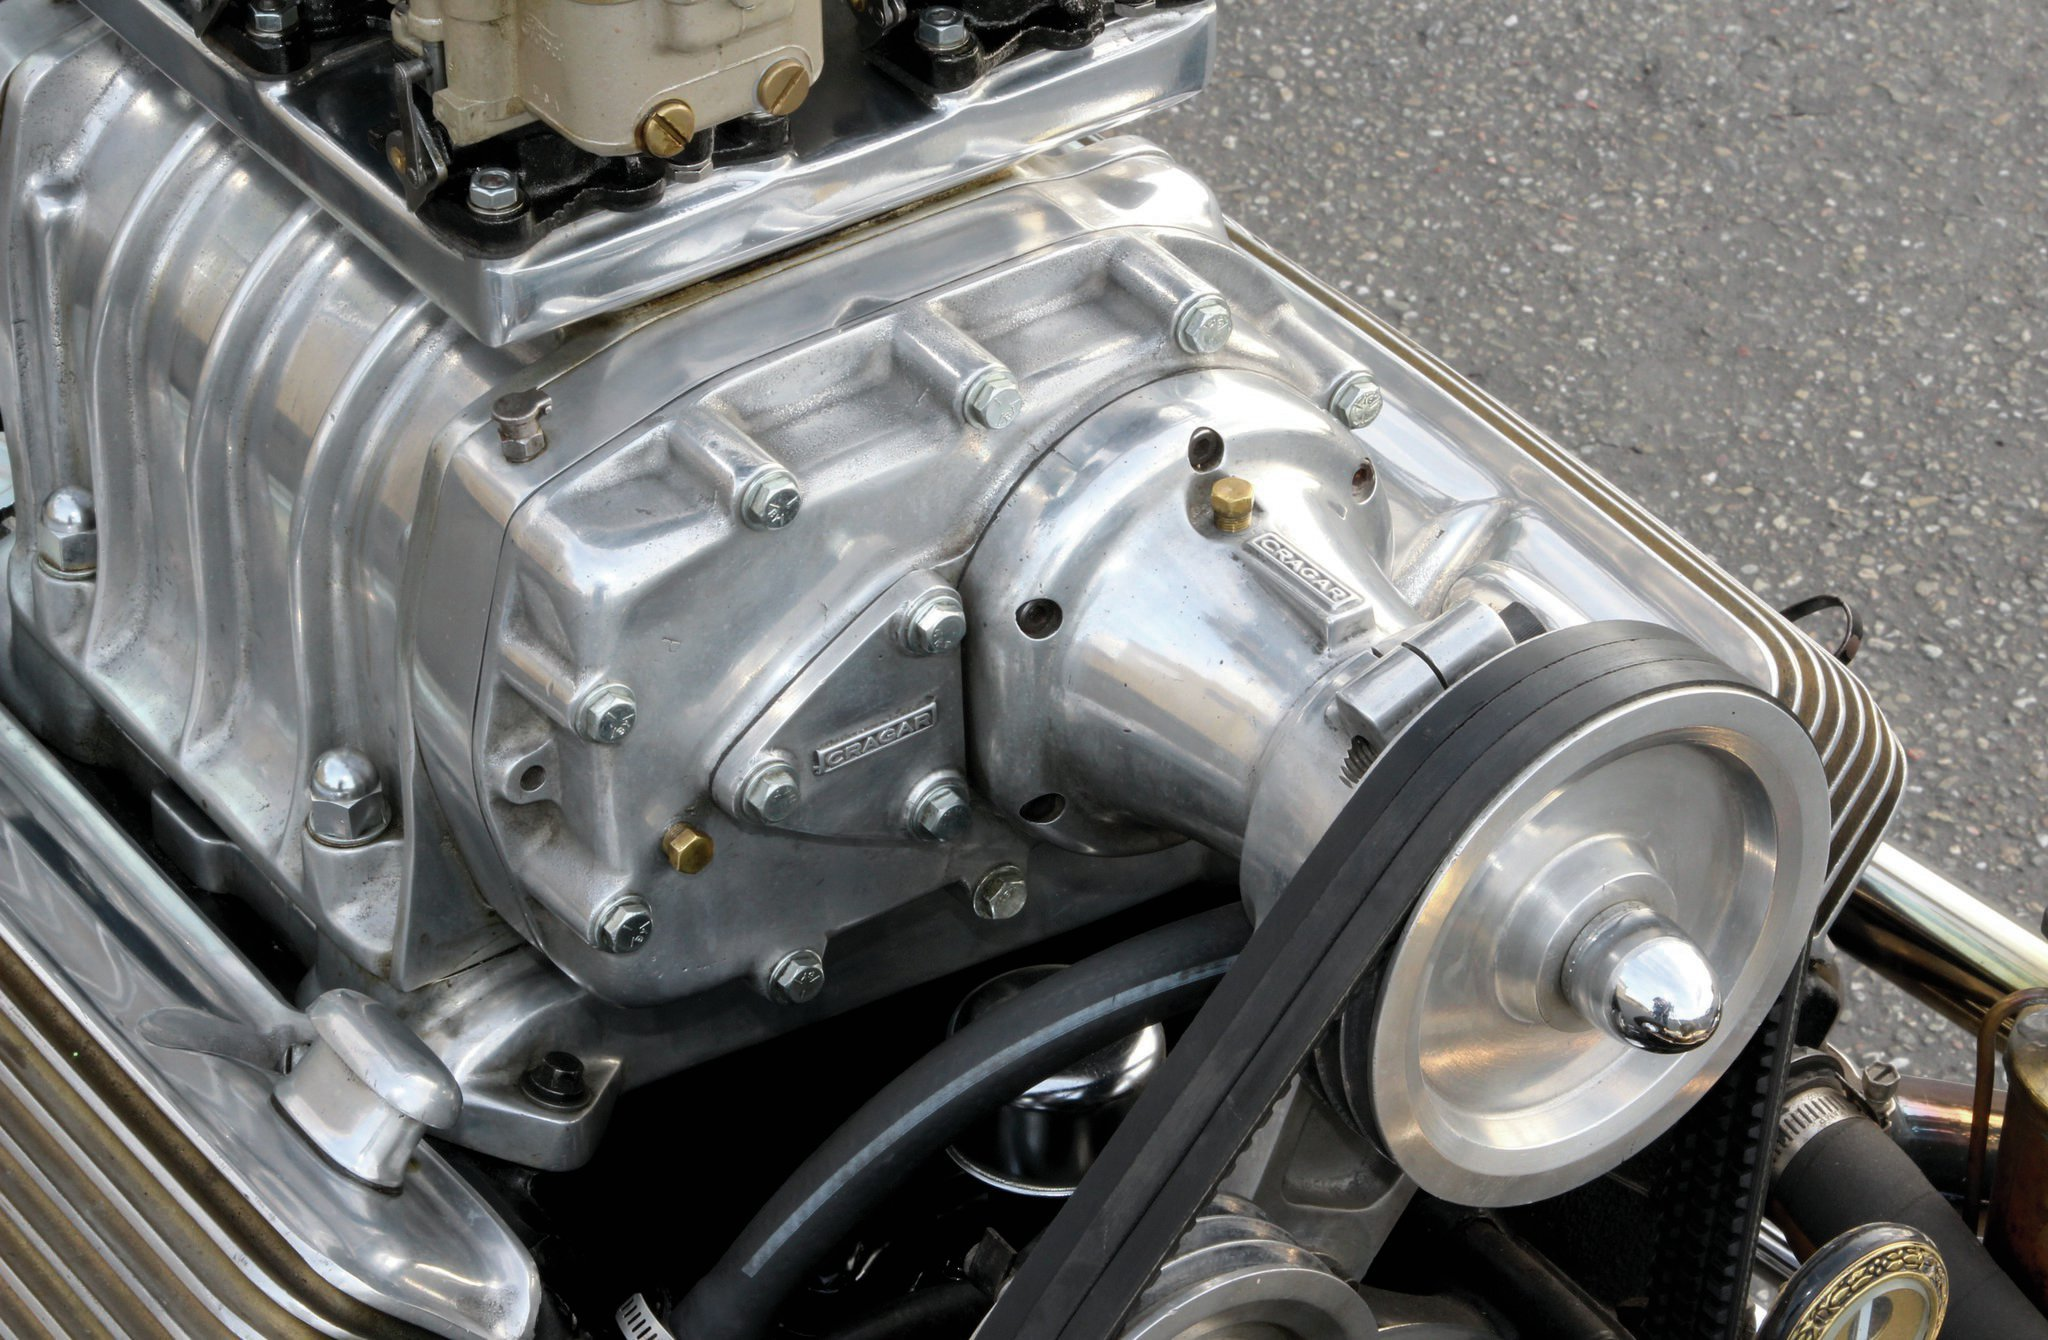 The '55 Cadillac 331 engine was bored 0.100 over to almost 350 ci. The engine also has what is said to be the Holy Grail of Cadillac speed parts, a Cragar 4-71 supercharger. This was installed in 1958 along with the six Holley 94 carburetors. Underneath the Edelbrock finned valve covers, the engine has Isky adjustable rocker arms along with an Isky cam.